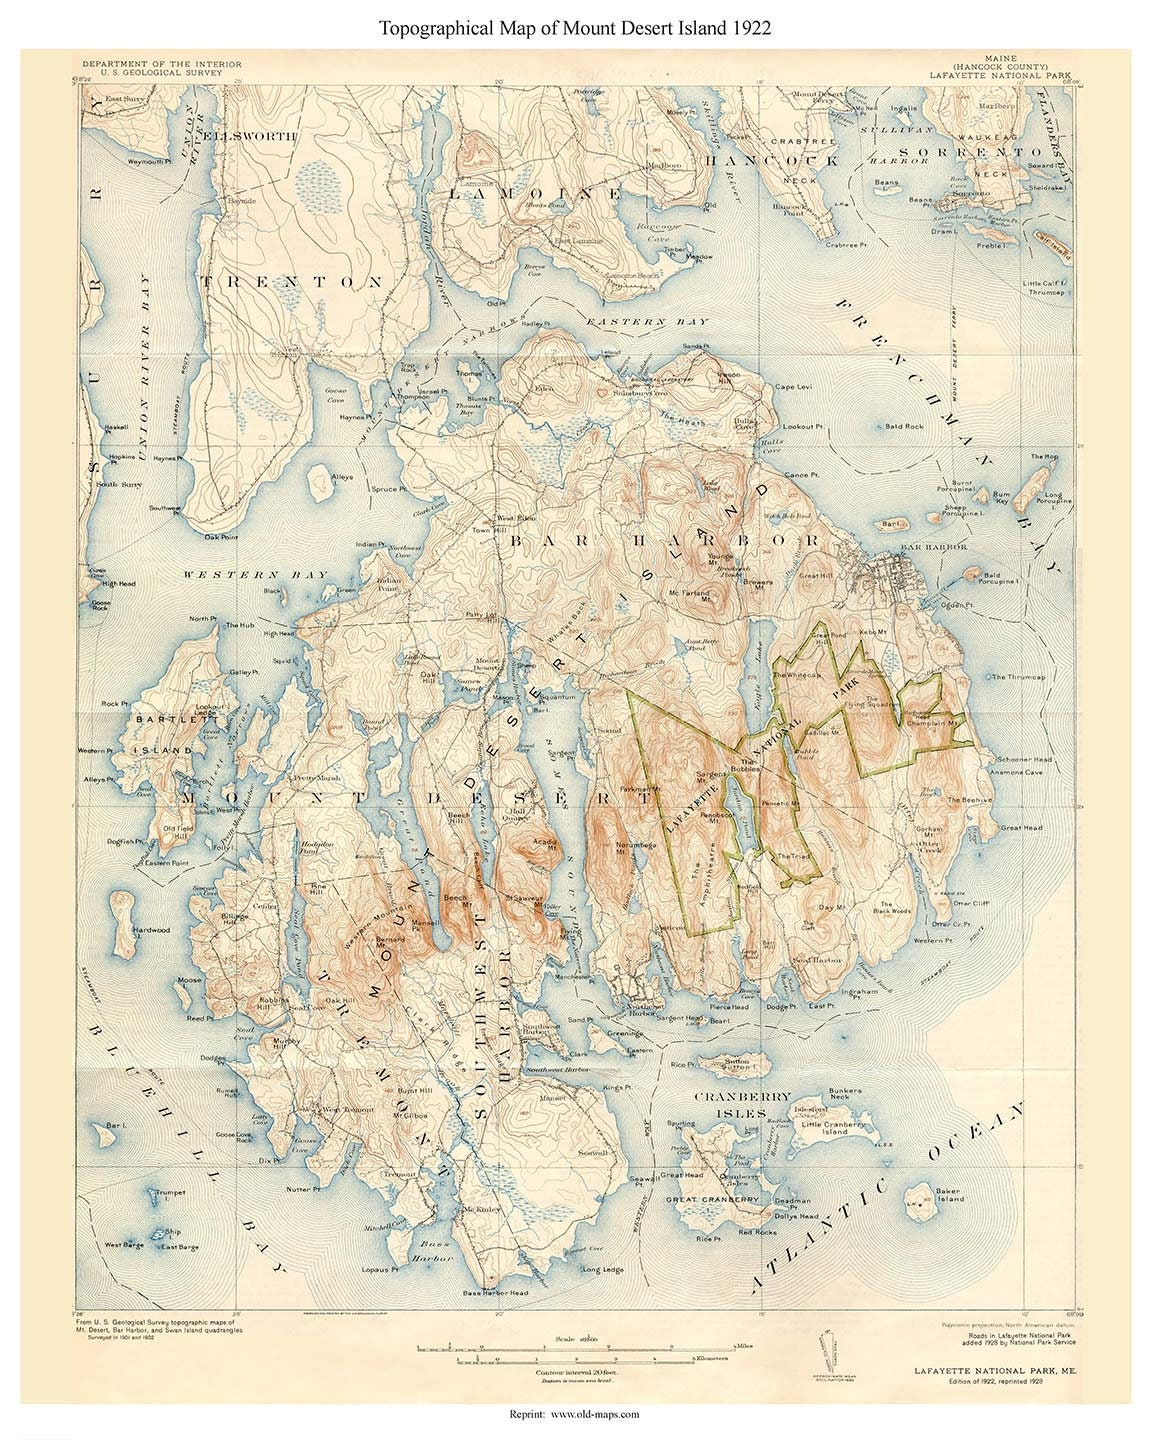 Topo Map Of Maine.Mount Desert Island 1922 Old Topo Map Edited Reprint Of The Etsy